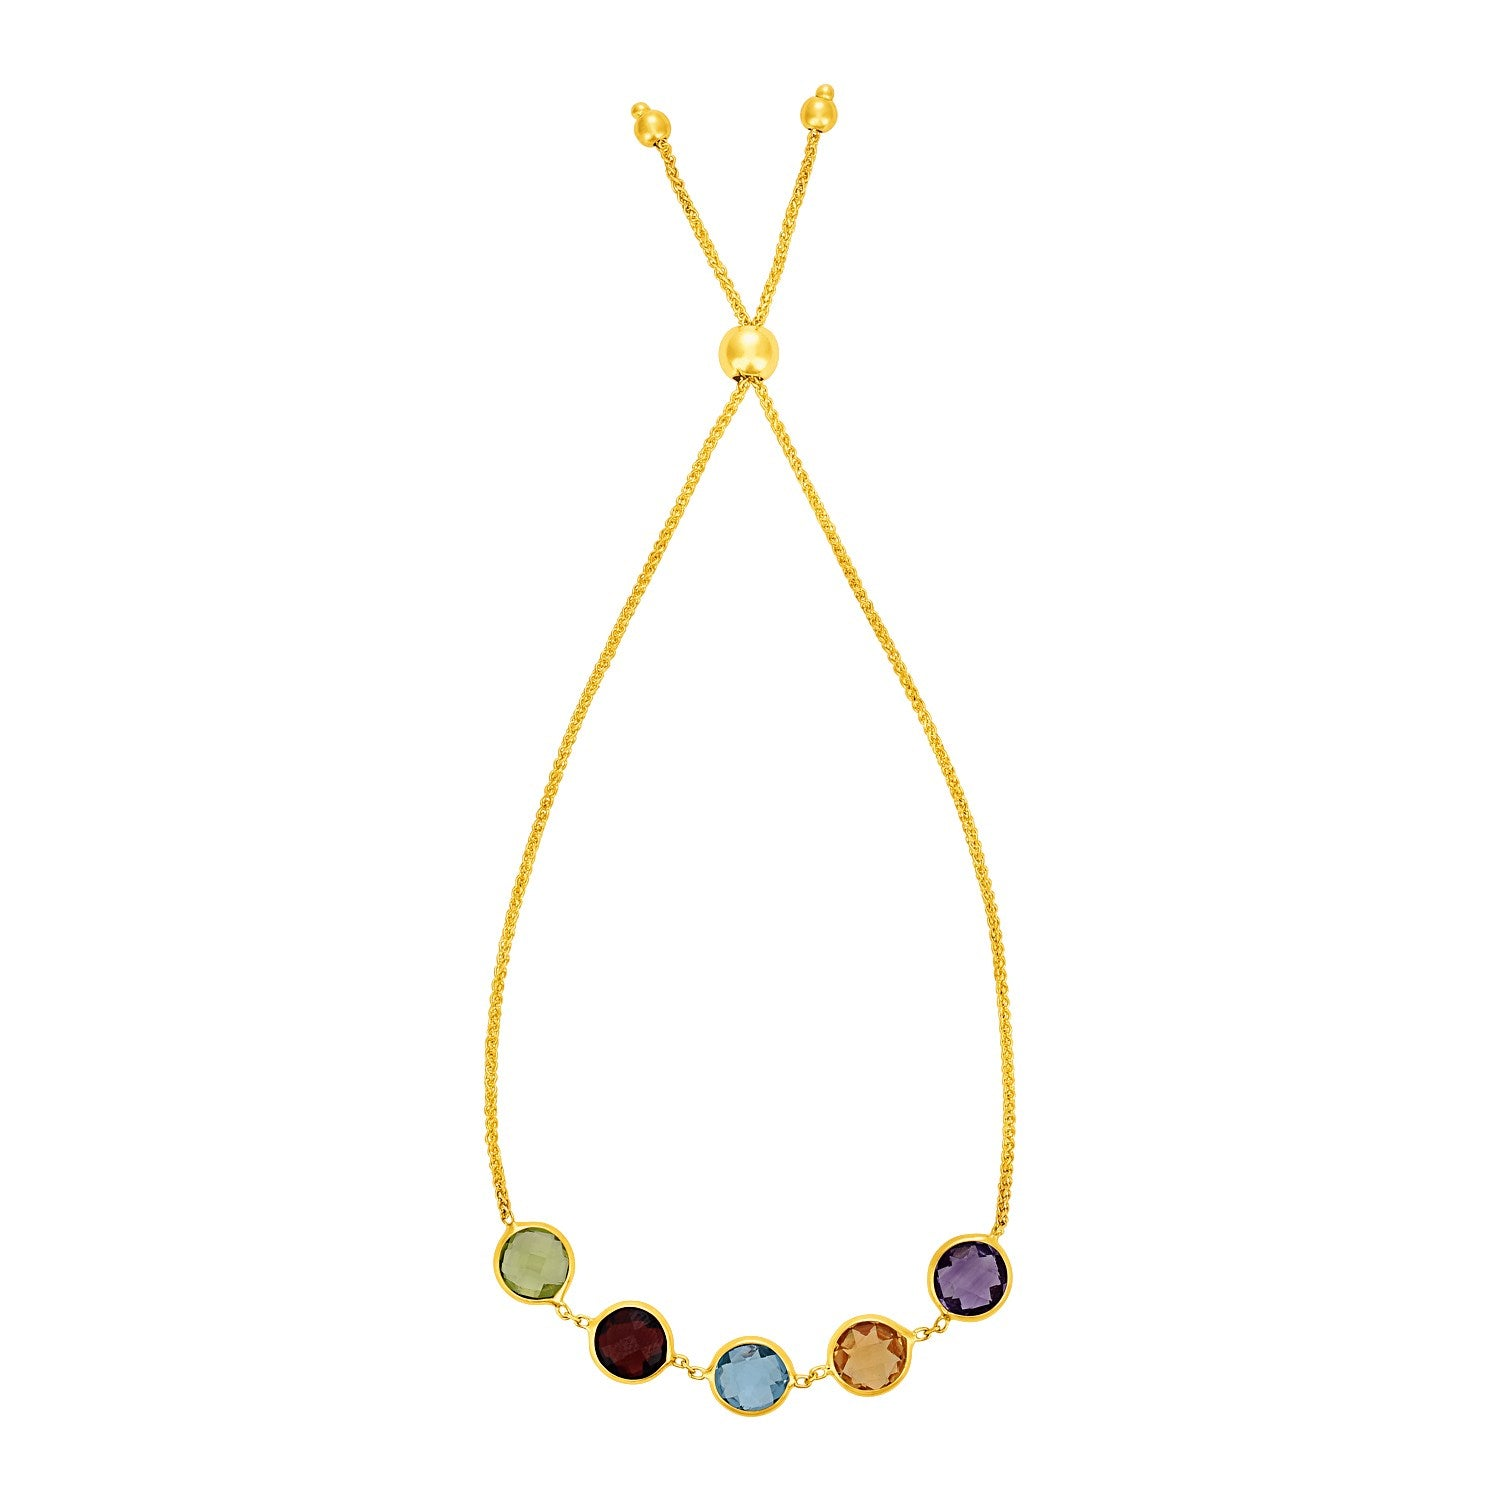 Adjustable Bracelet with Multicolored Large Round Gemstones in 14K Yellow Gold